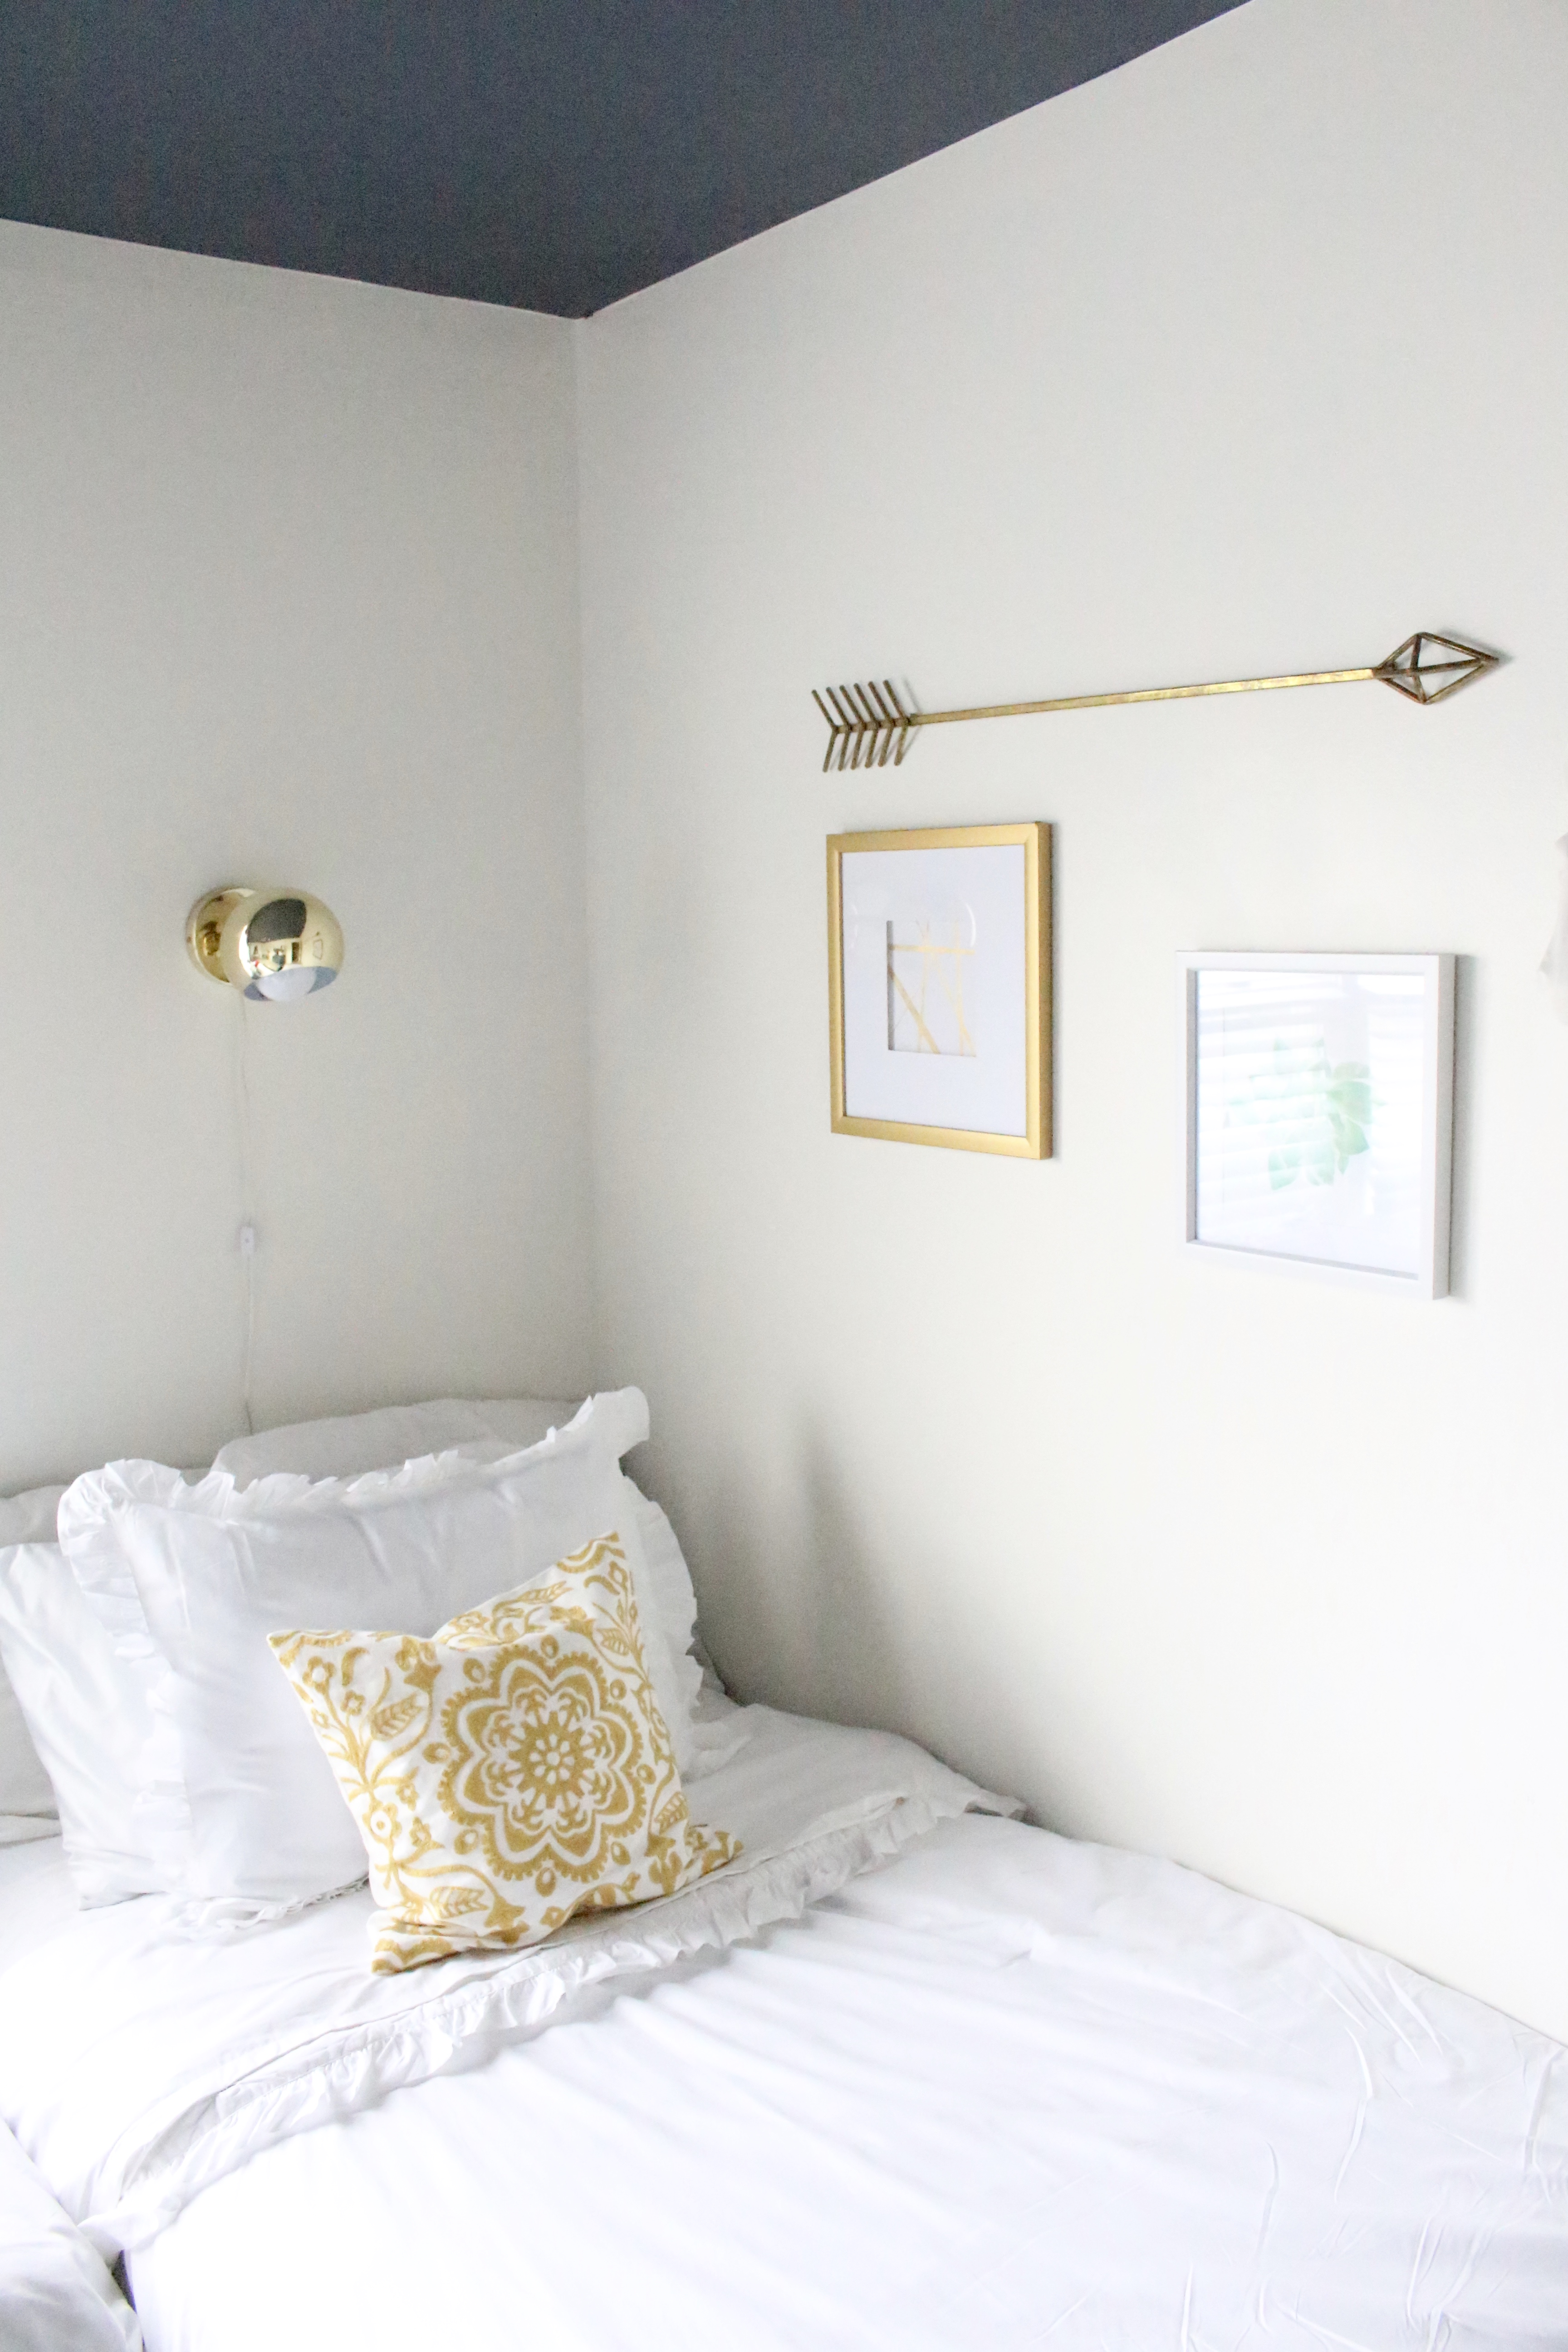 One Room Challenge Space- ORC- Modern Teen Hangout Bedroom- Tween Bedroom- Bedroom Redo- Modern- Colorful Room- Girls Bedroom- Minted Art Work- At Home stores- Room Redo